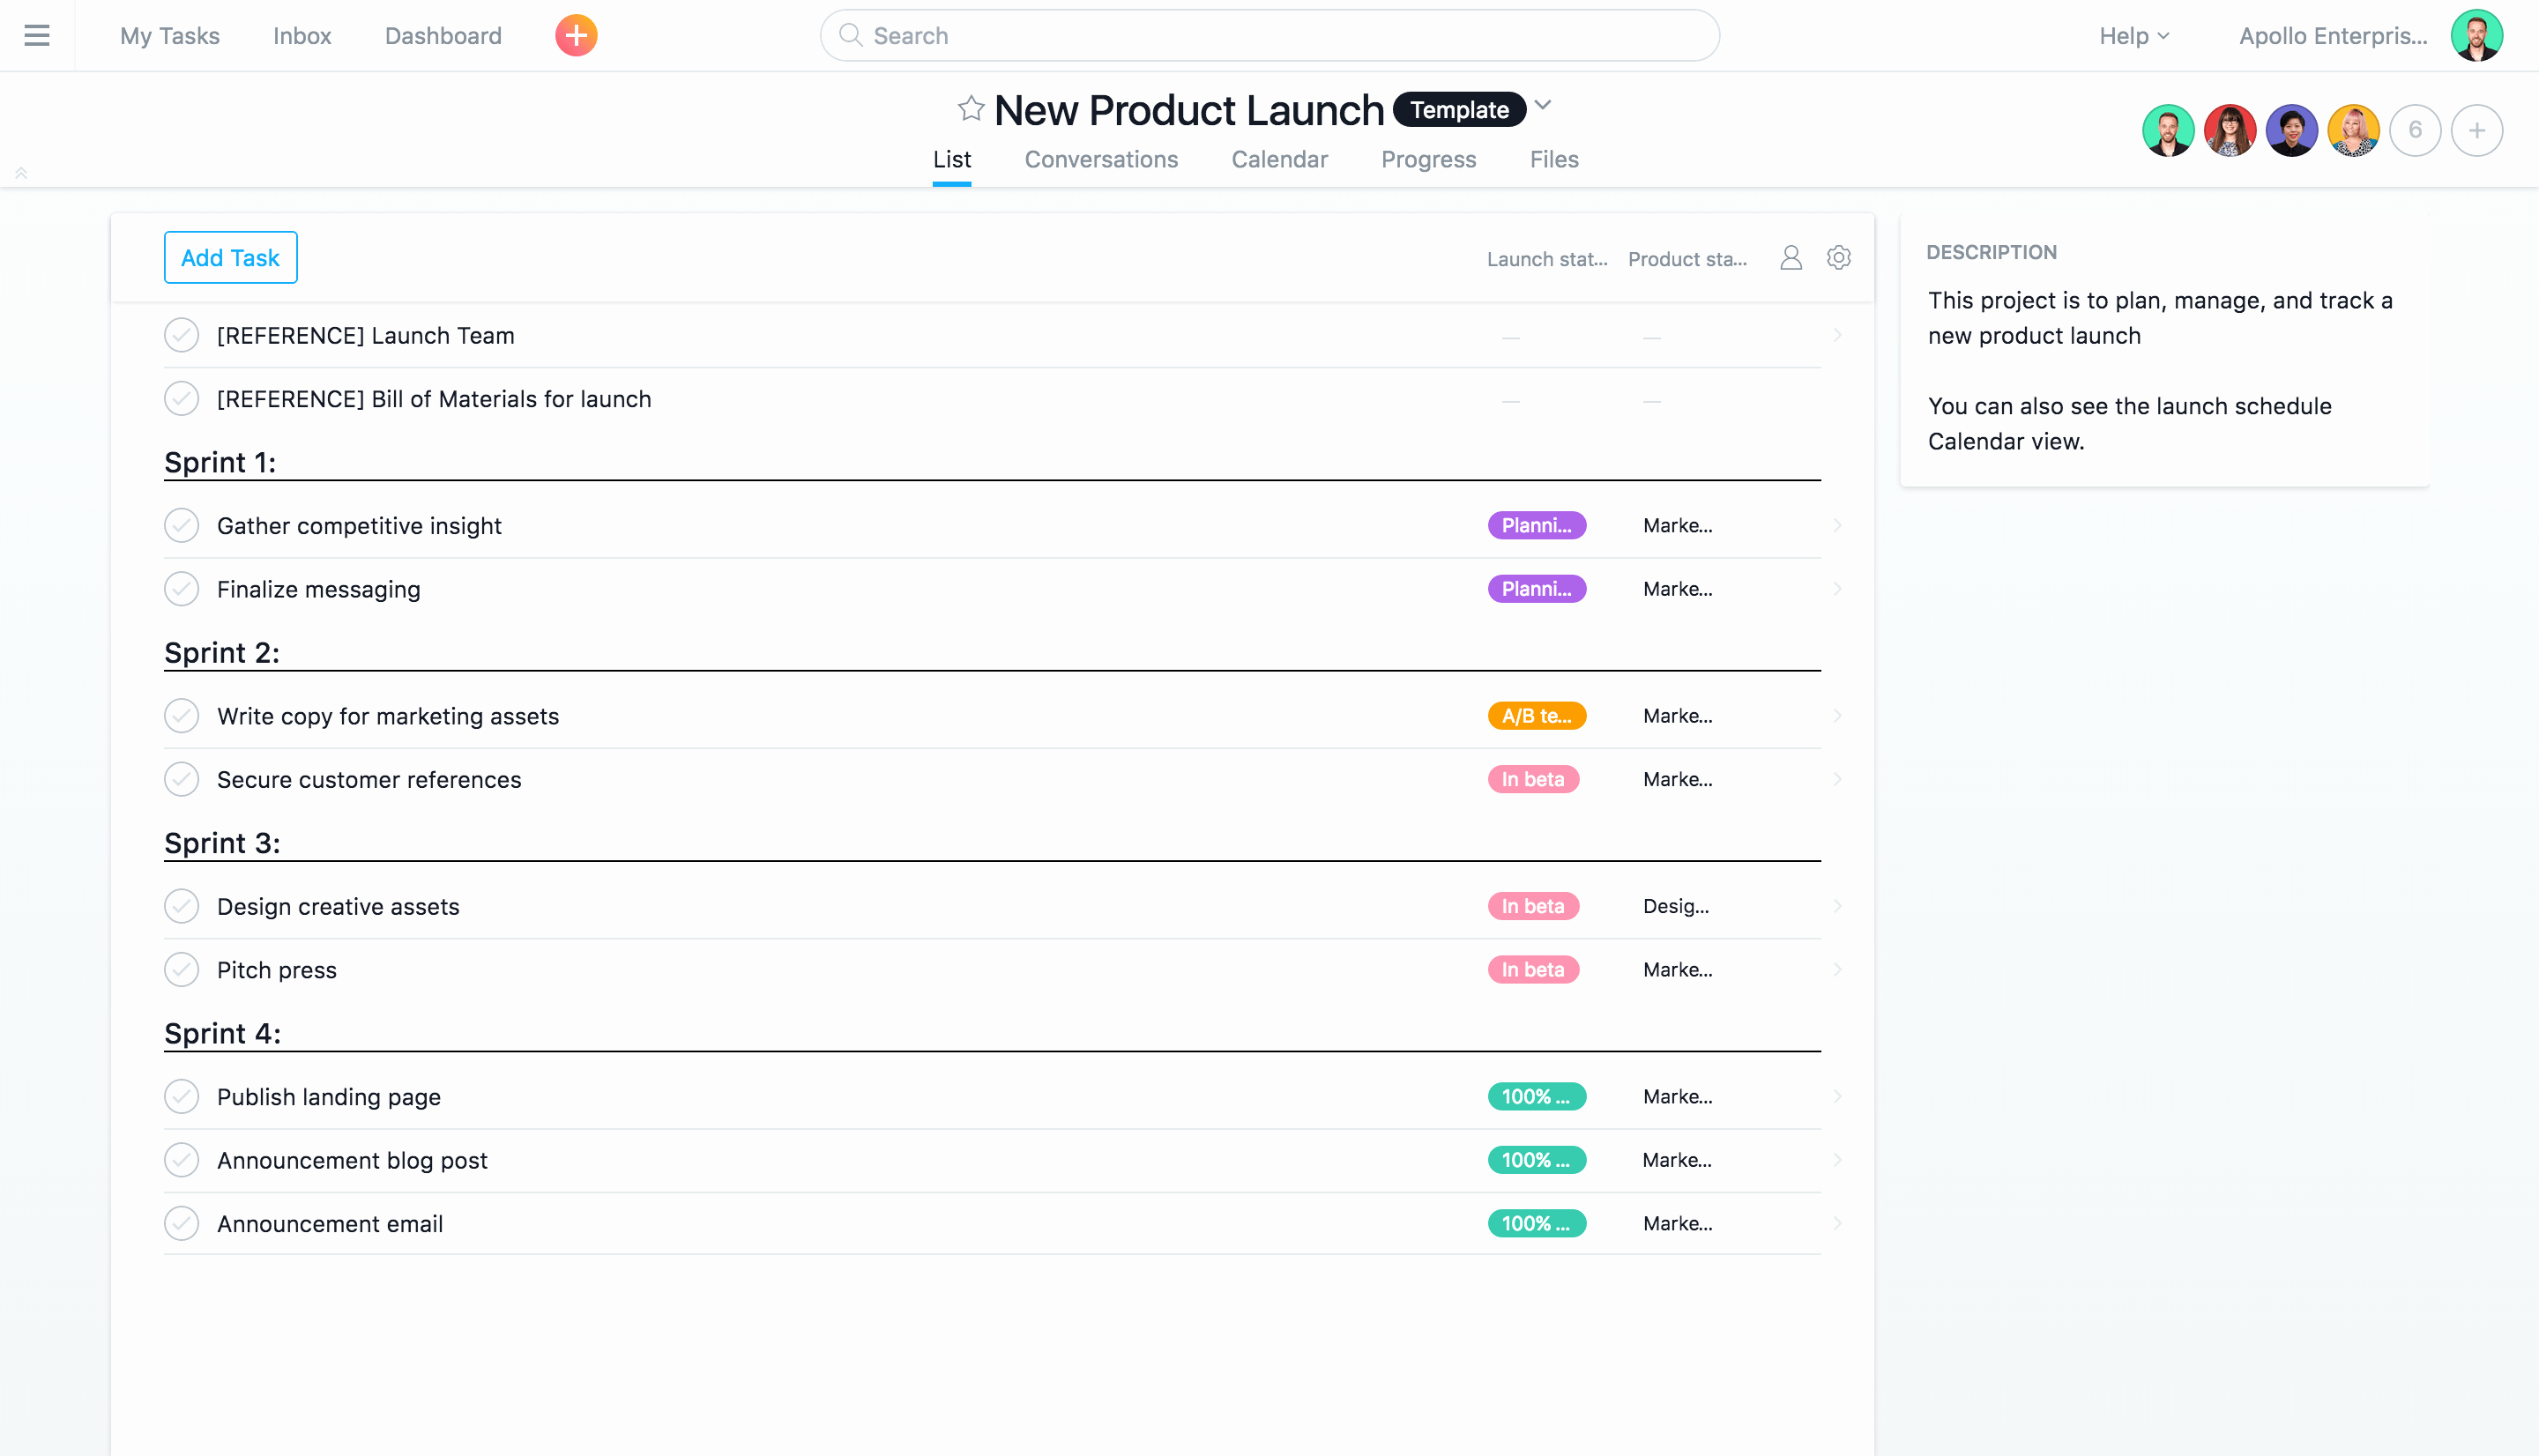 Product Launch Plan Template Unique 5 Tips for A Successful Product Launch Marketing Plan